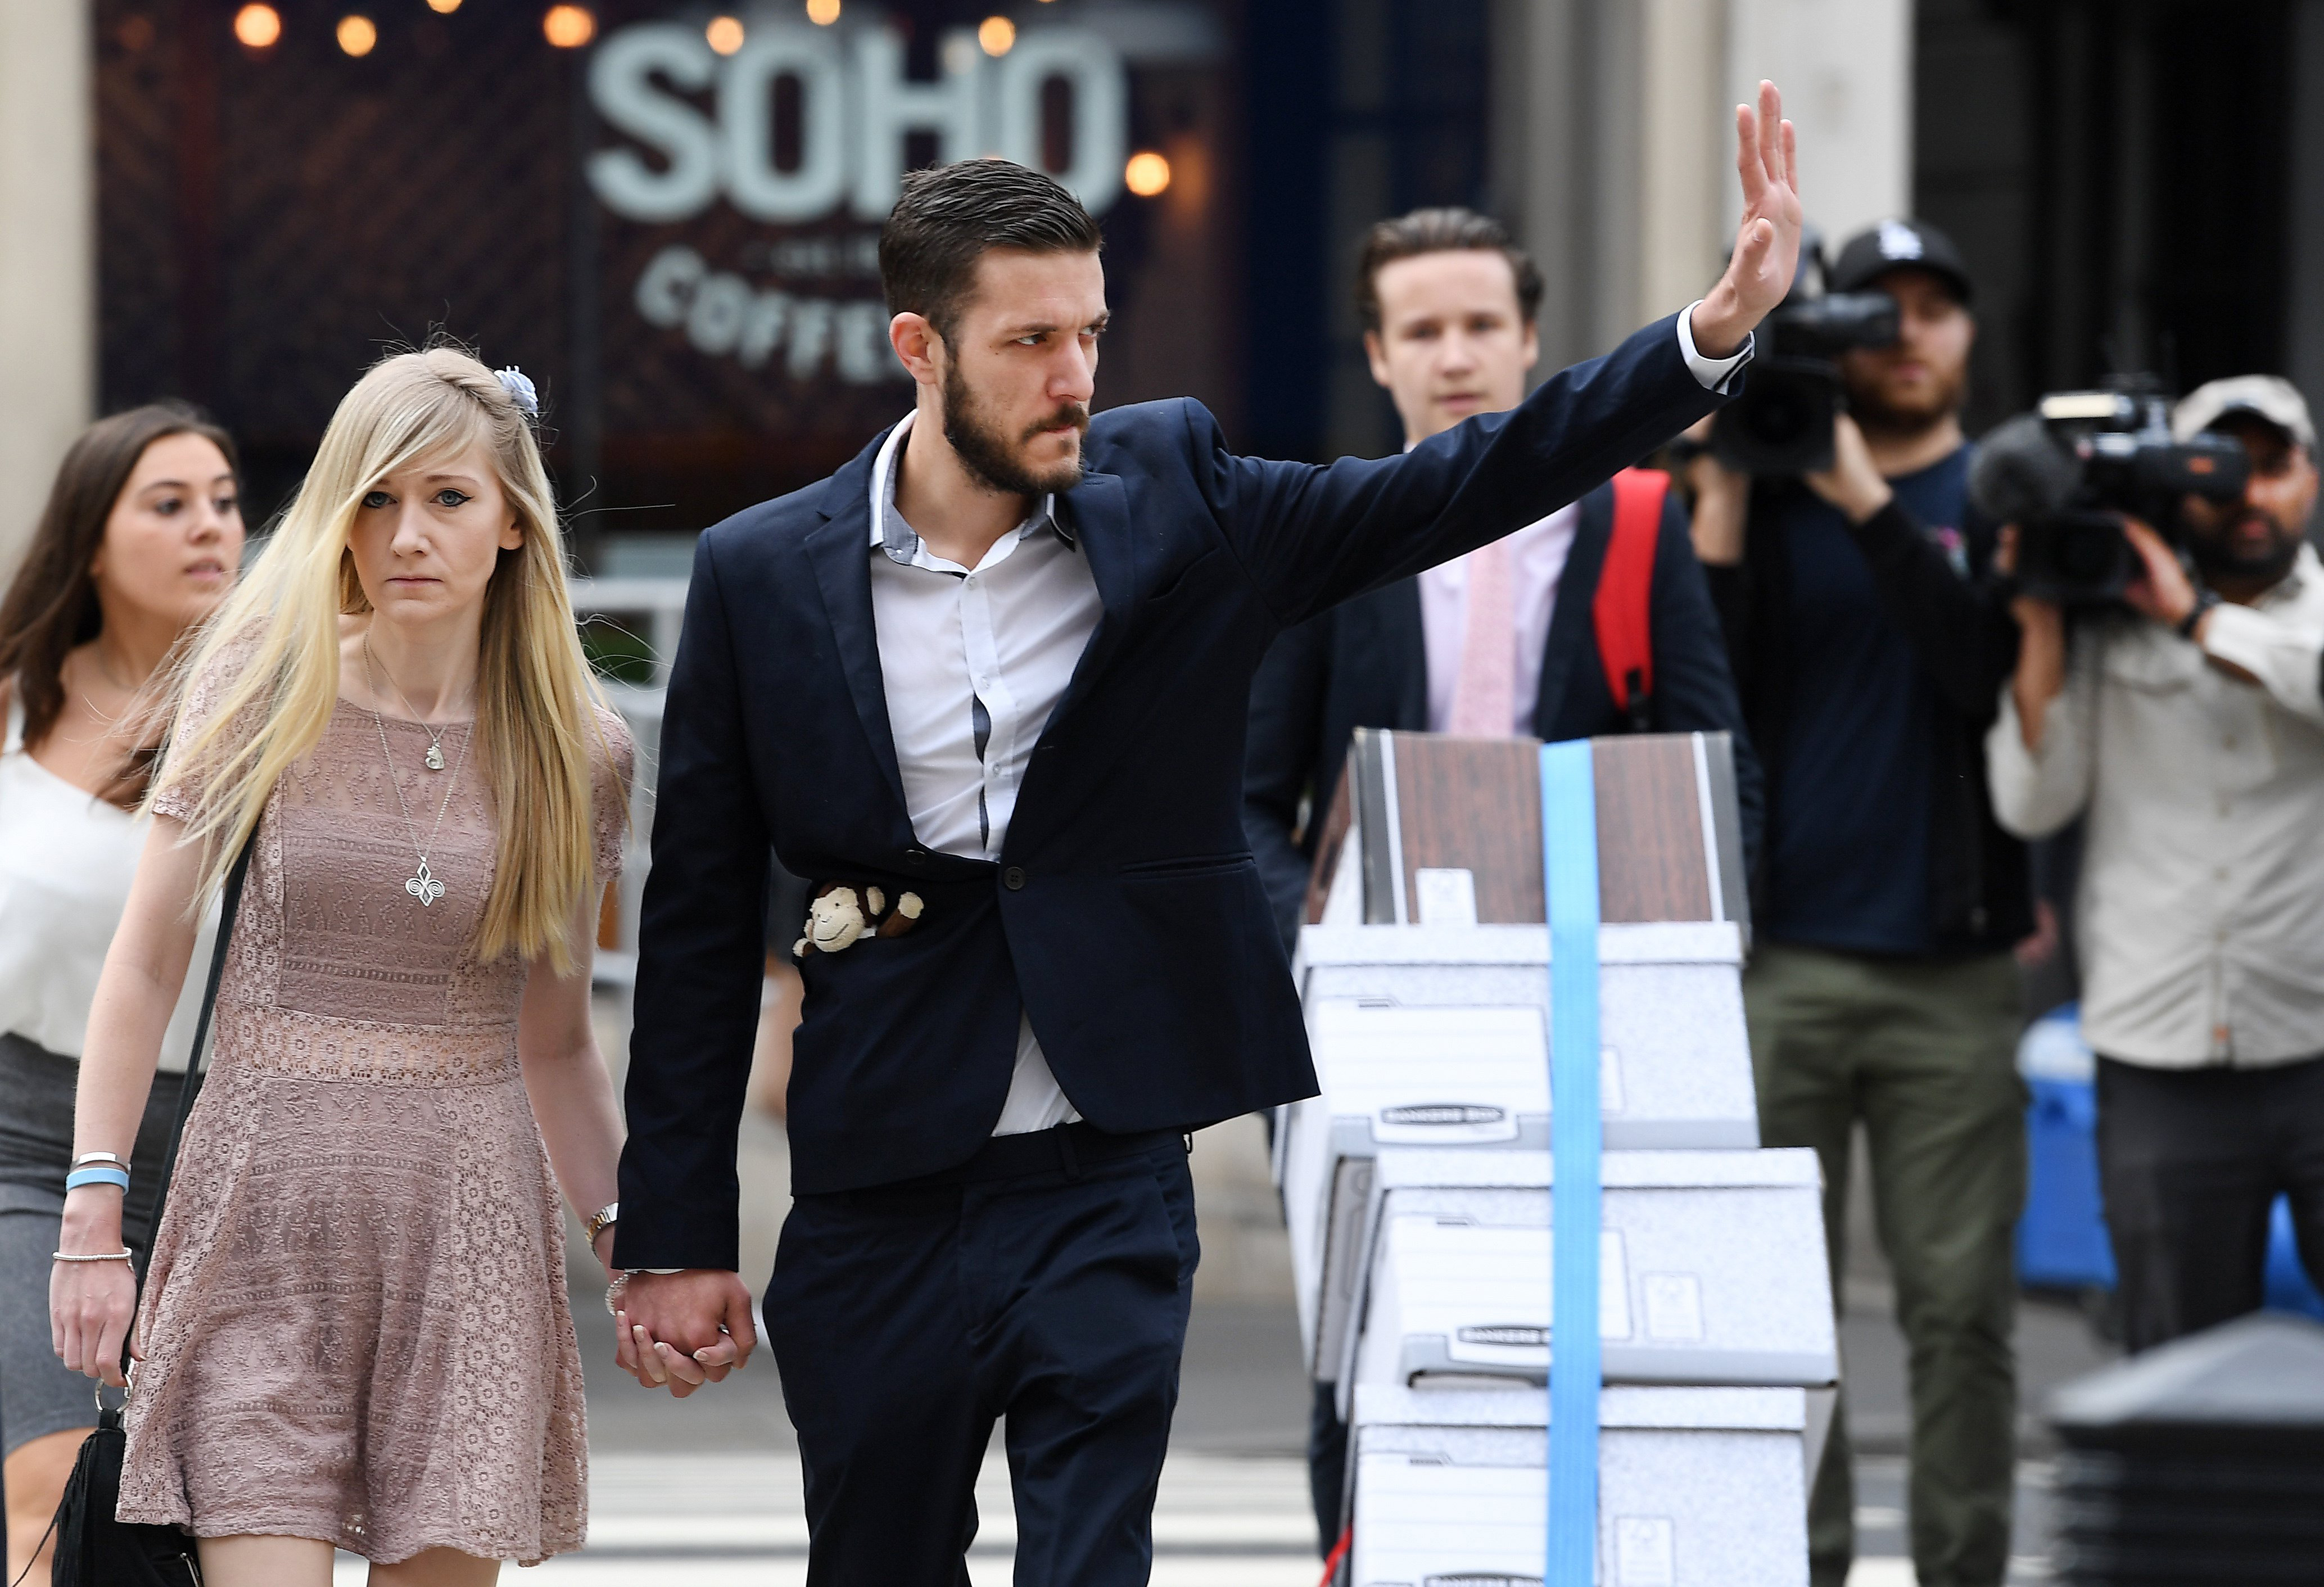 Image: The parents of Charlie Gard, Connie Yates and Chris Gard, arrive at the High Court with a spokesperson in London